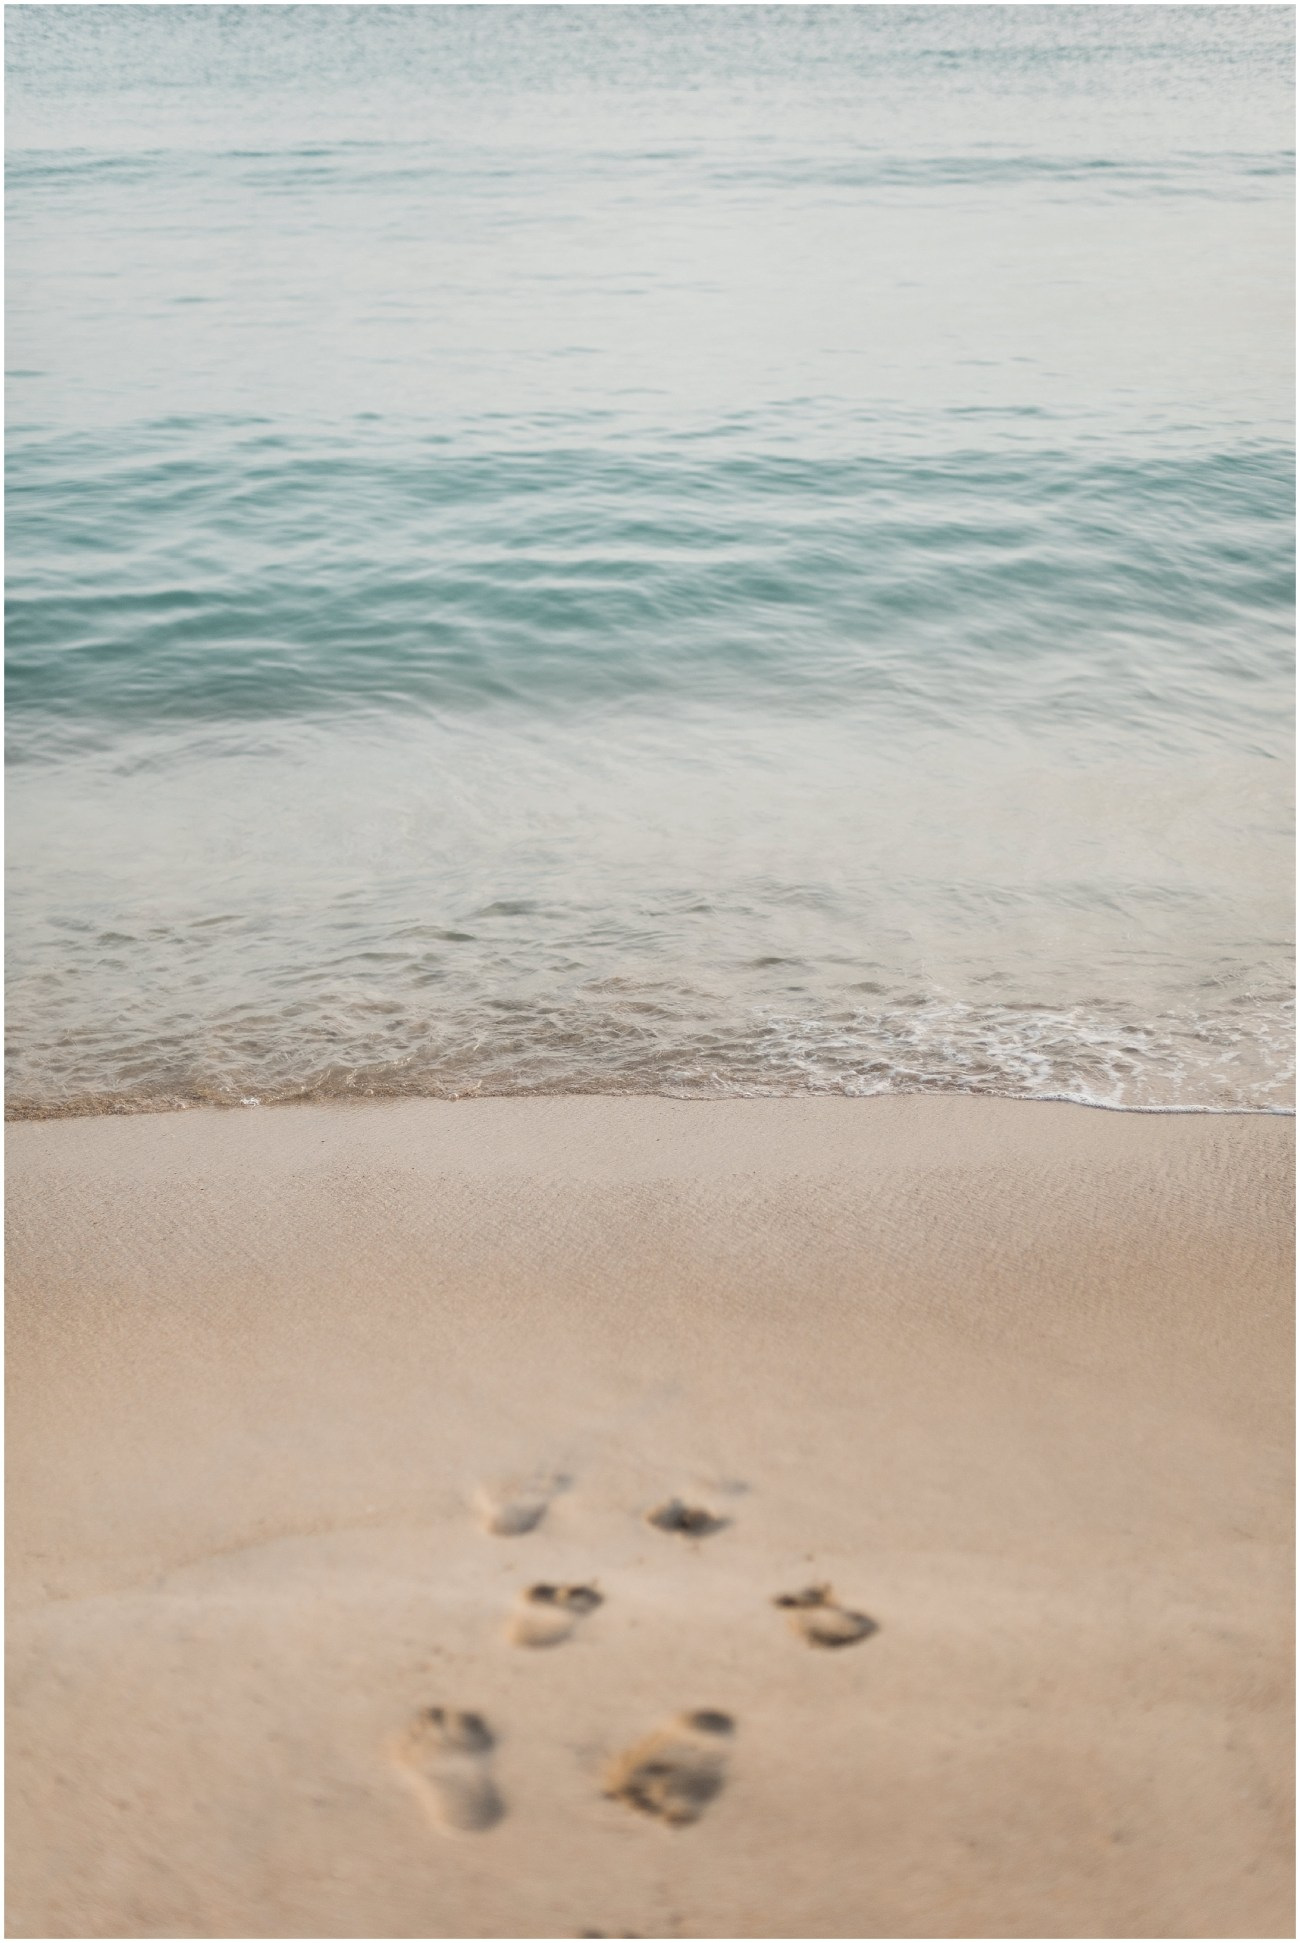 Photo of footprints on a beach in the USVI